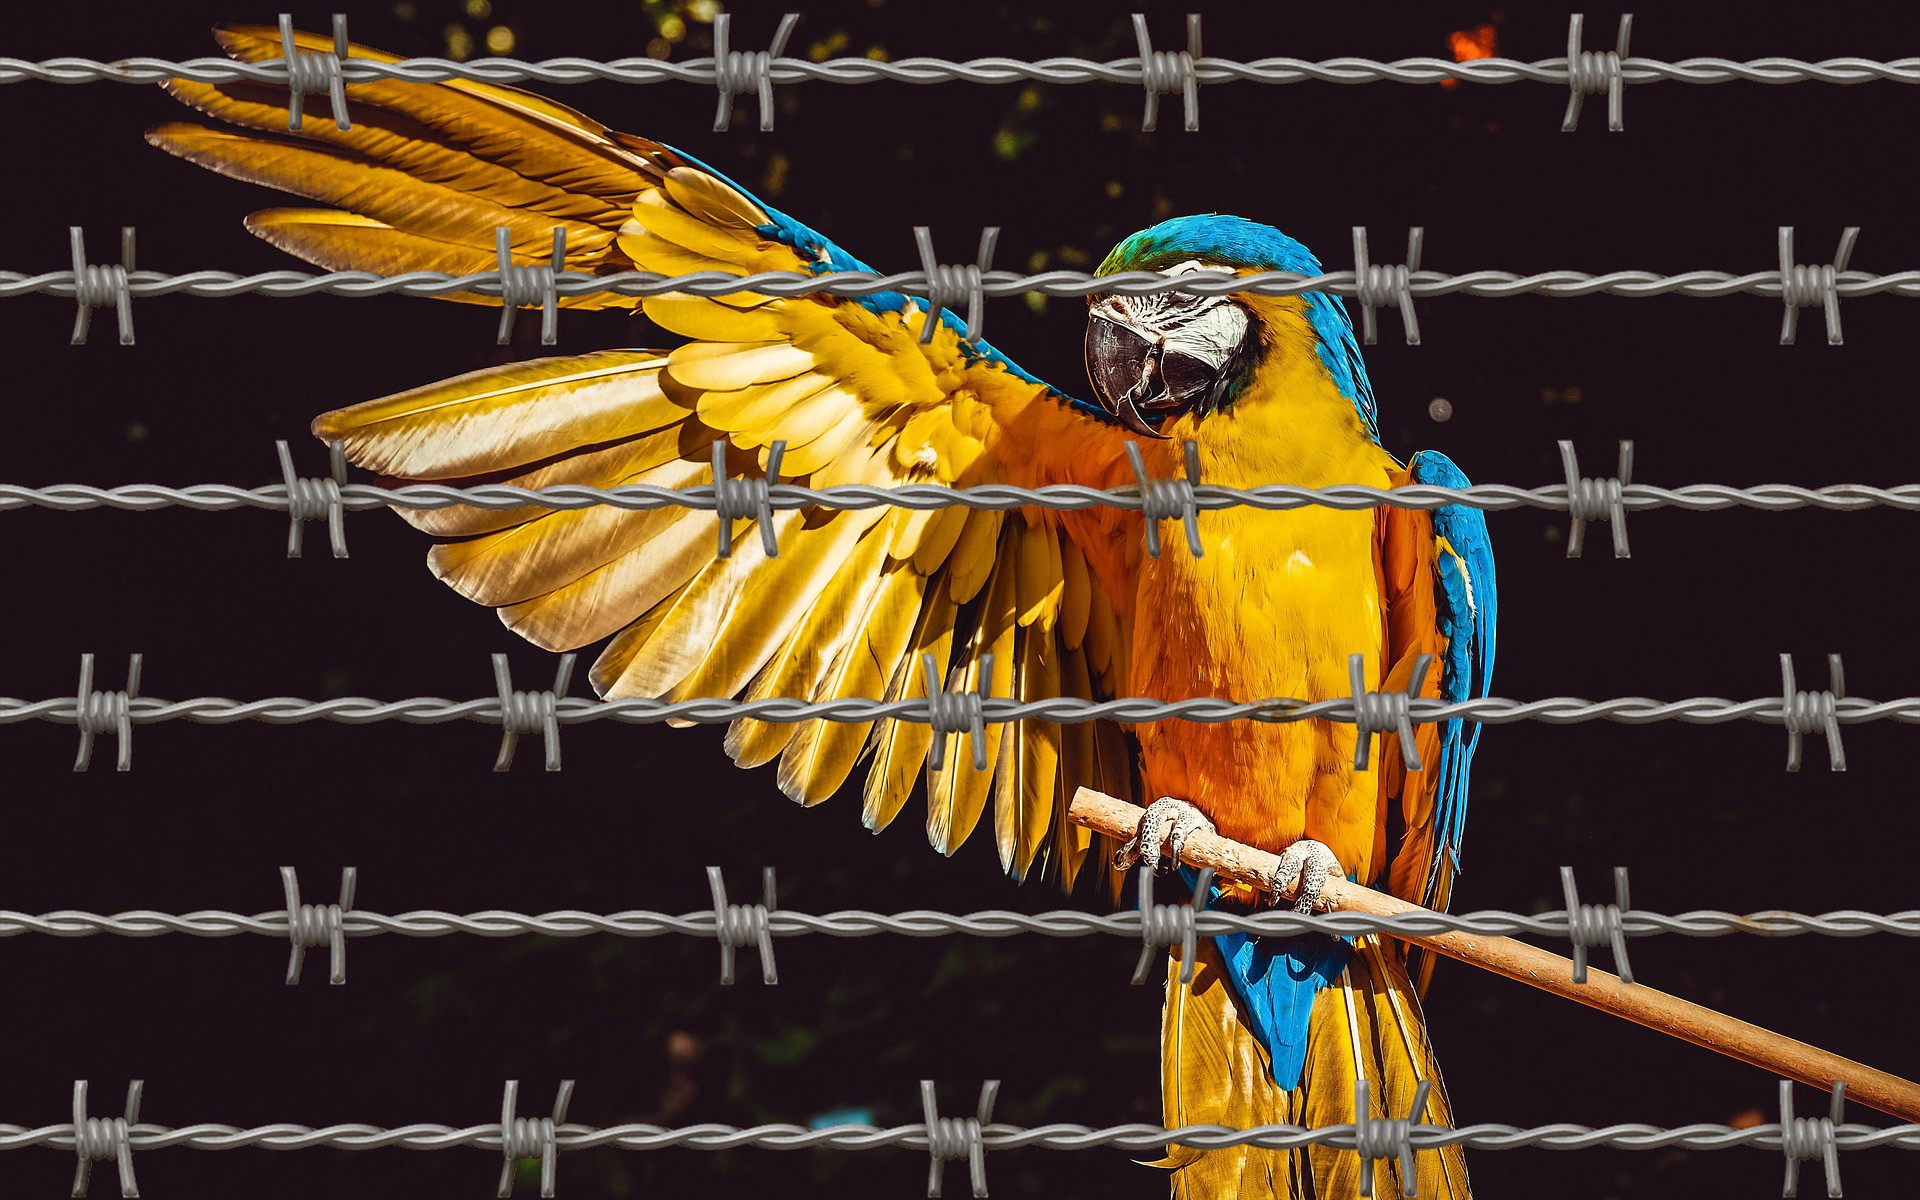 A Bird in Prison, caged. Metaphor: people do find redemption, peace and inner beauty. Society is well served trusting that.